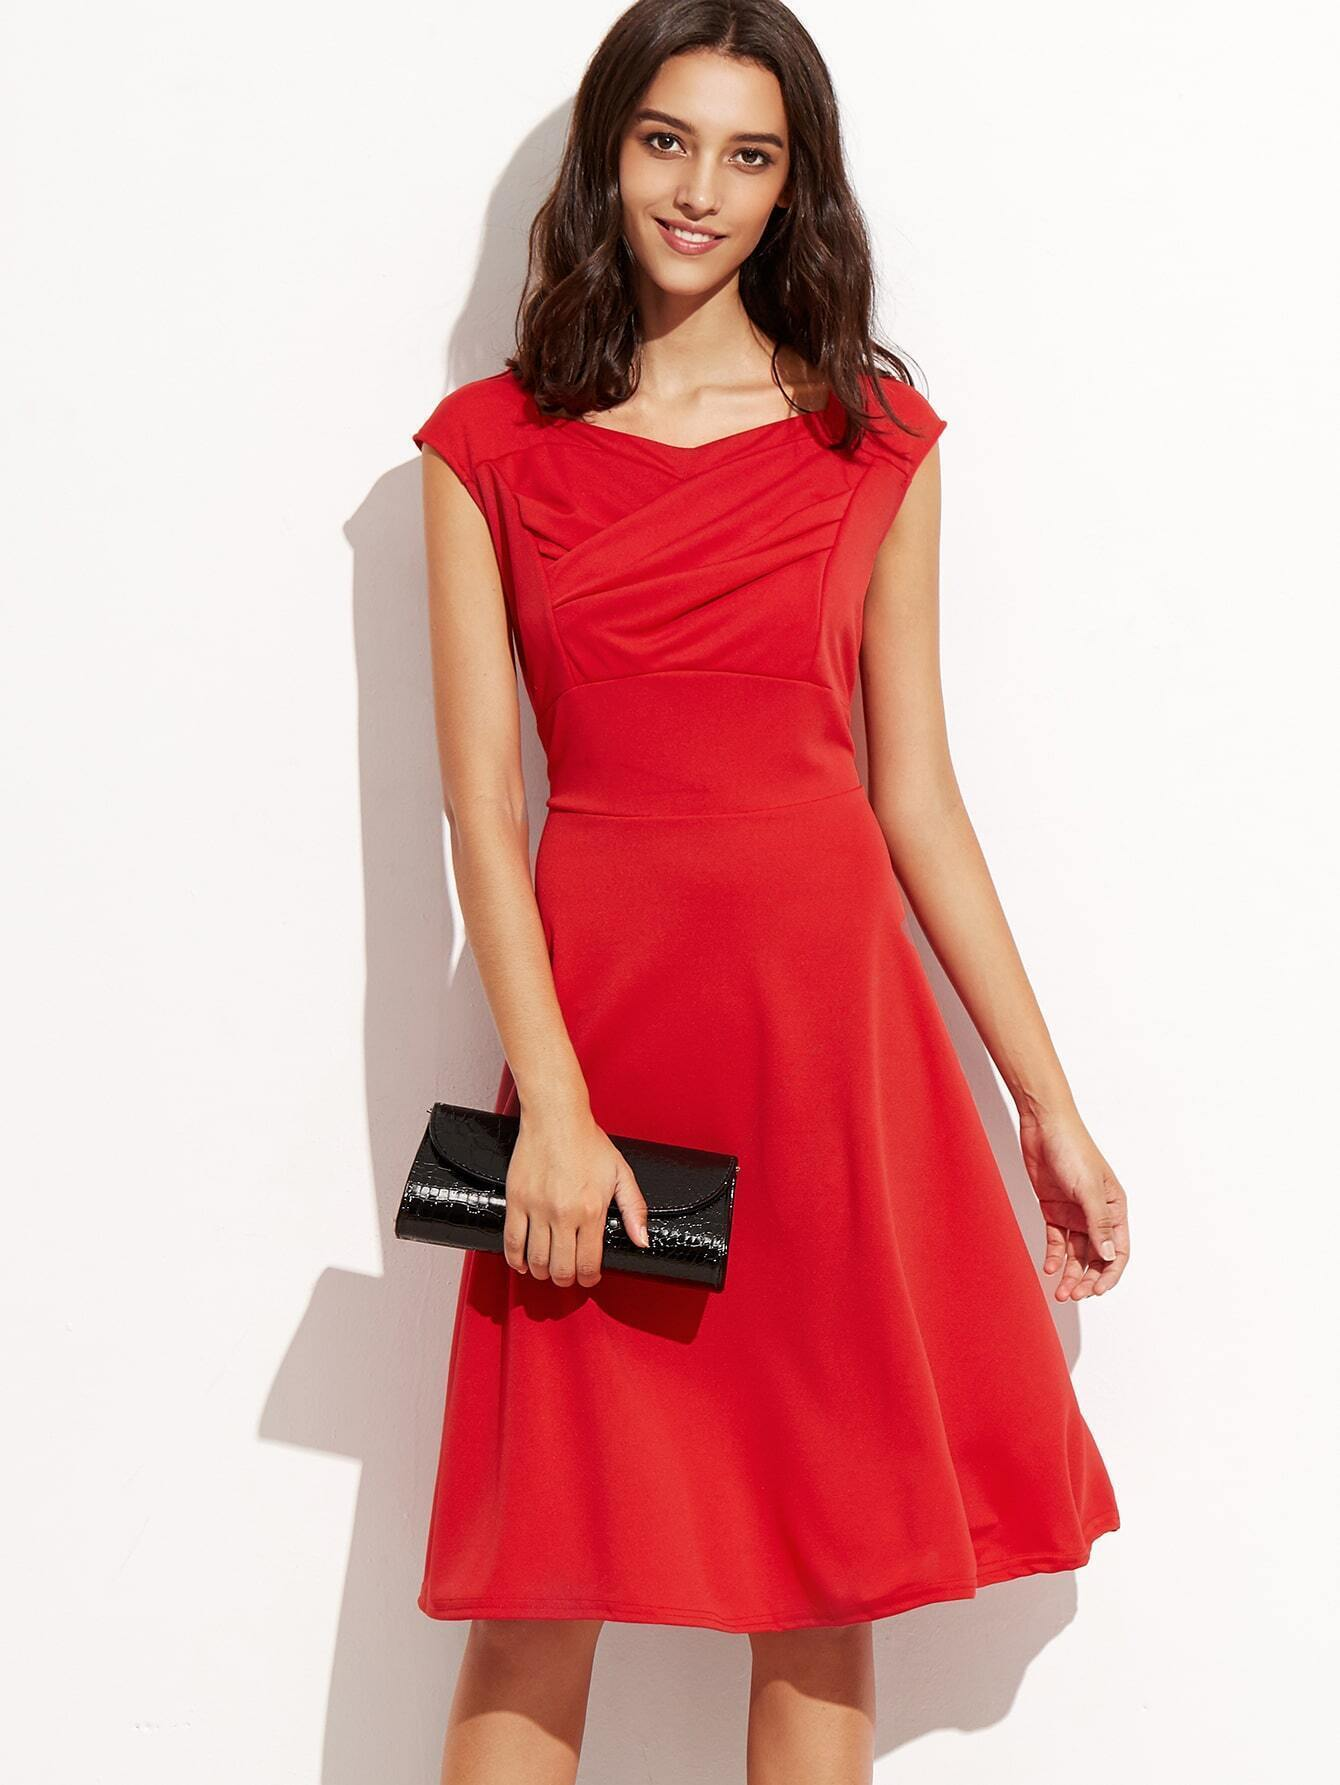 Heart Shape Collar Sleeveless Red Dress - $18.33